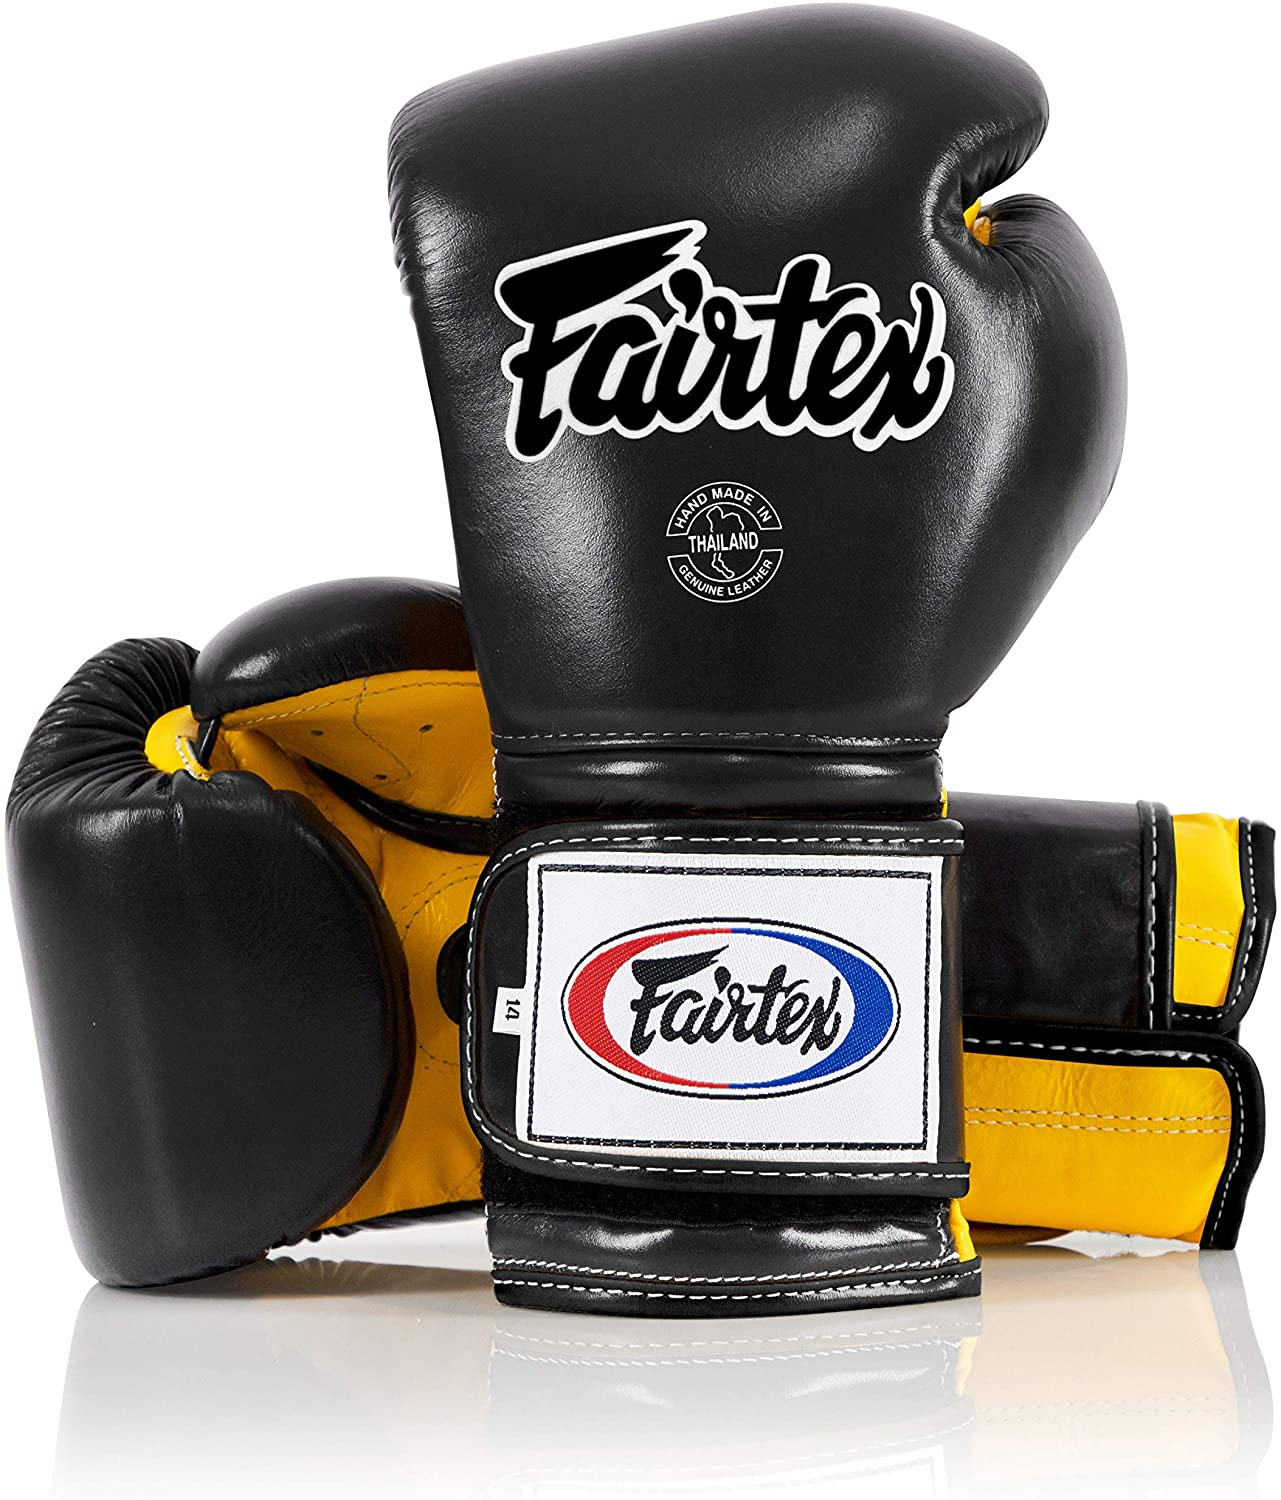 Minor Change Solid Black 12 14 16 oz Training /& Sparring Gloves for Kick Boxing MMA K1 Heavy Hitter Mexican Style Fairtex Muay Thai Boxing Gloves BGV9